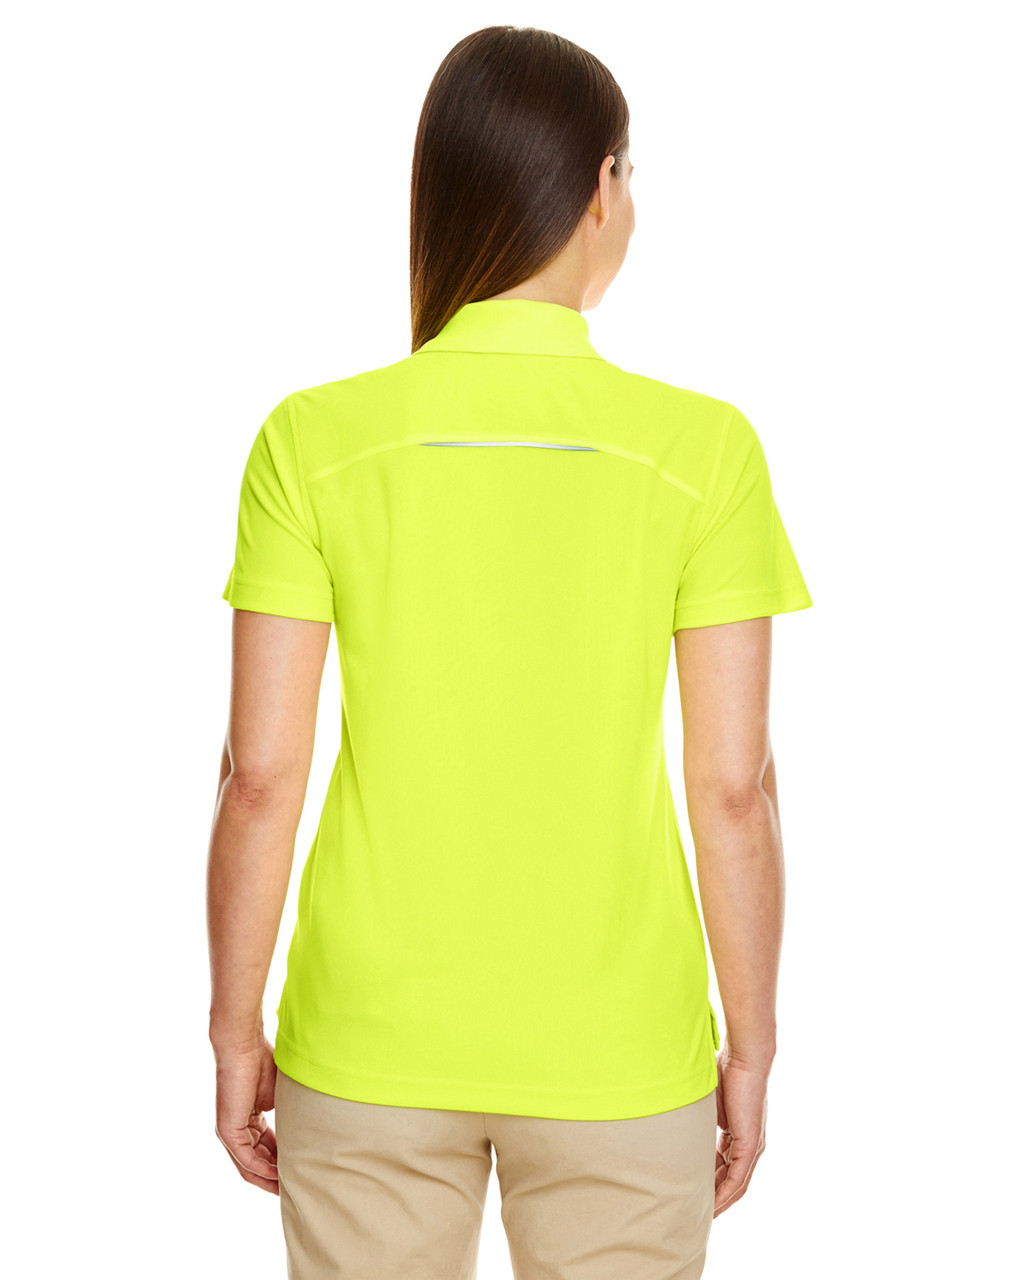 Safety Yellow - Back 78181R Ash City - Core 365 Ladies' Radiant Performance Piqué Polo Shirt with Reflective Piping | Blankclothing.ca